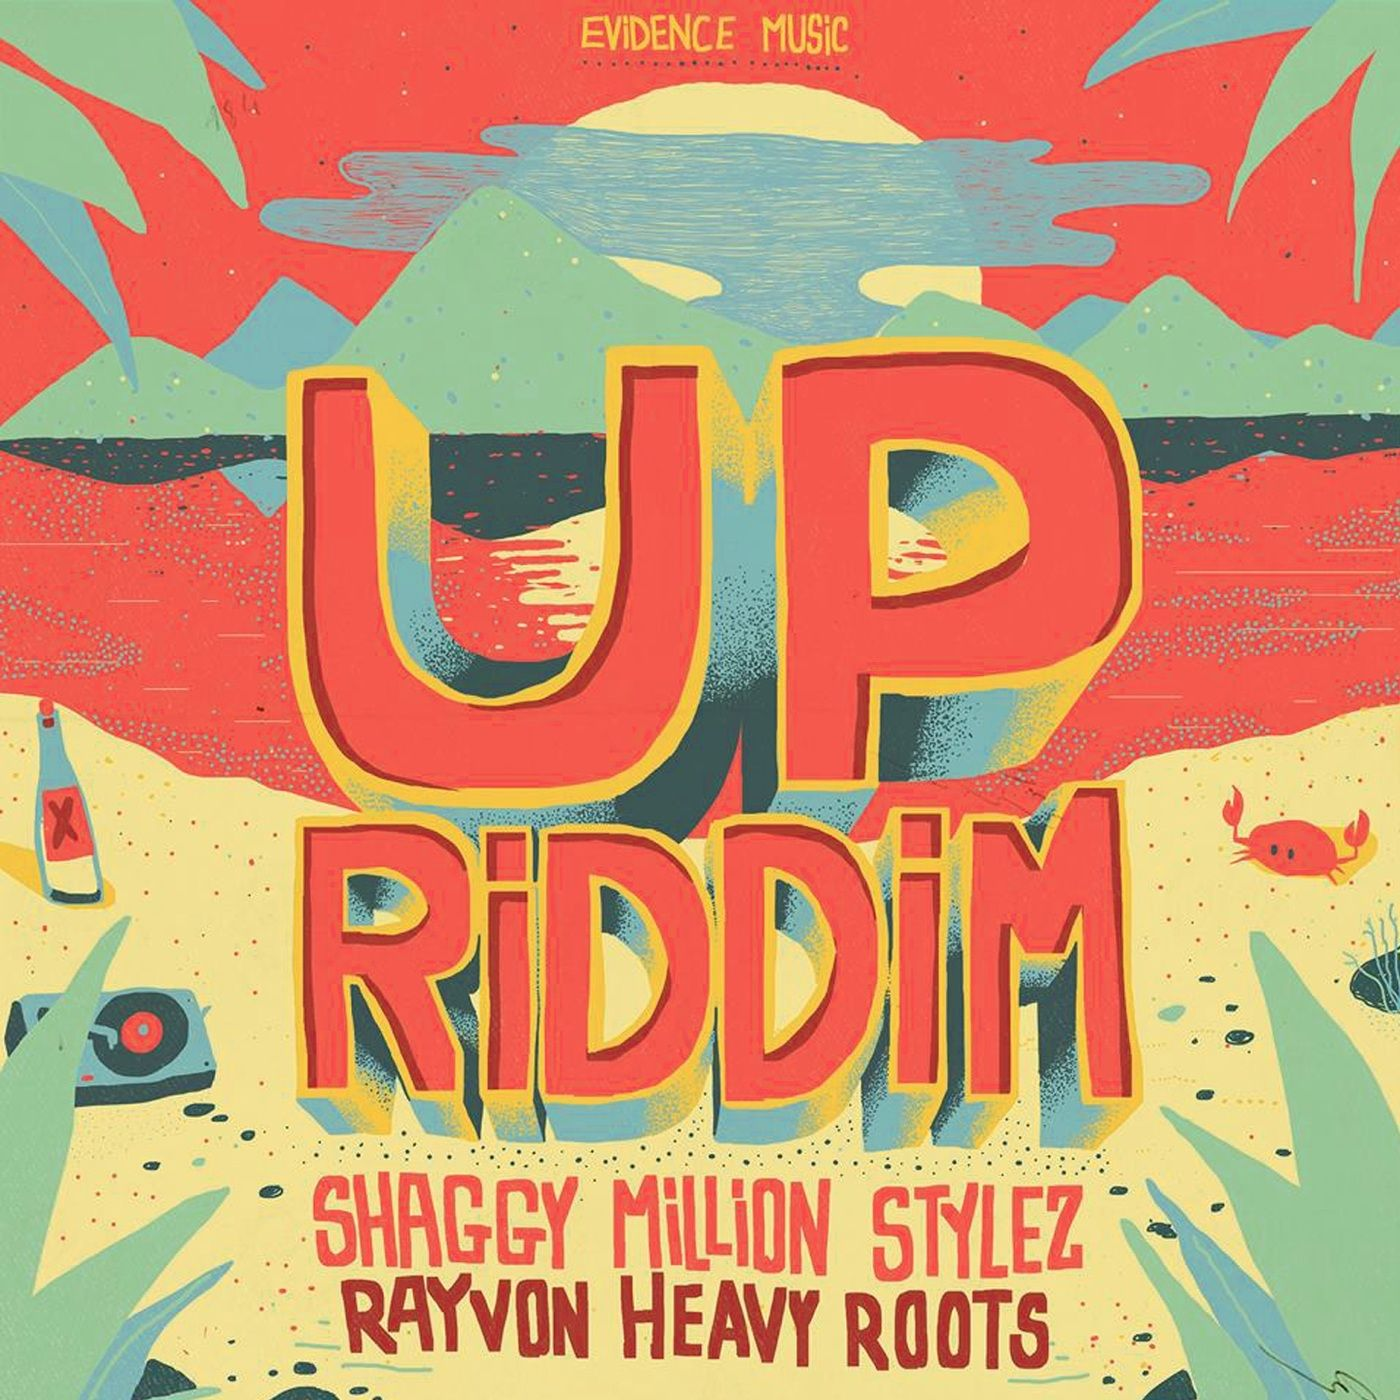 Up Riddim – 2018 Evidence Music | Riddim's | Music labels